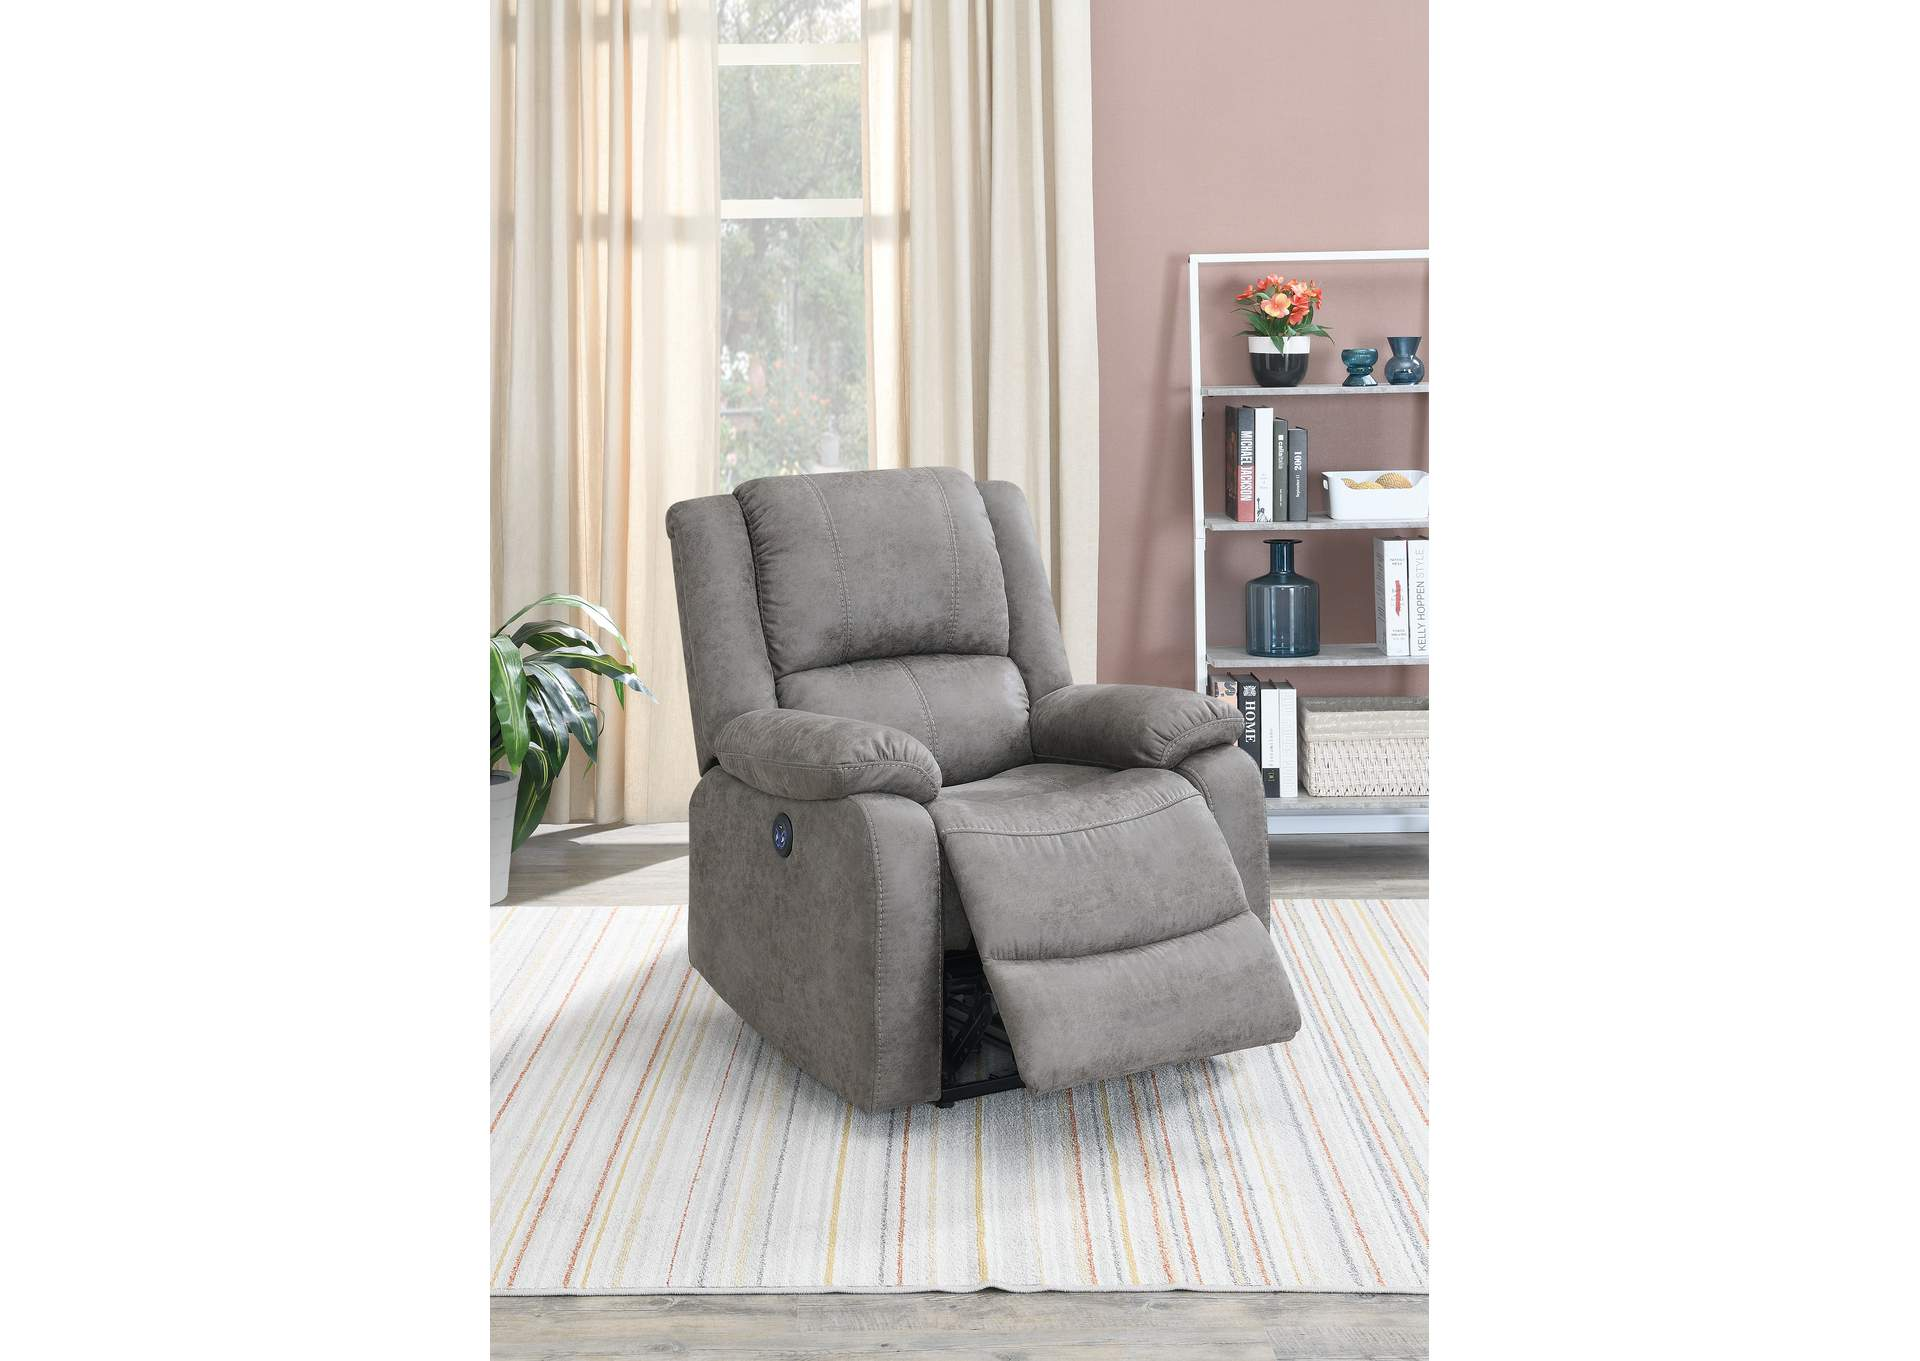 Jovfur Antique Grey Power Recliner,Poundex